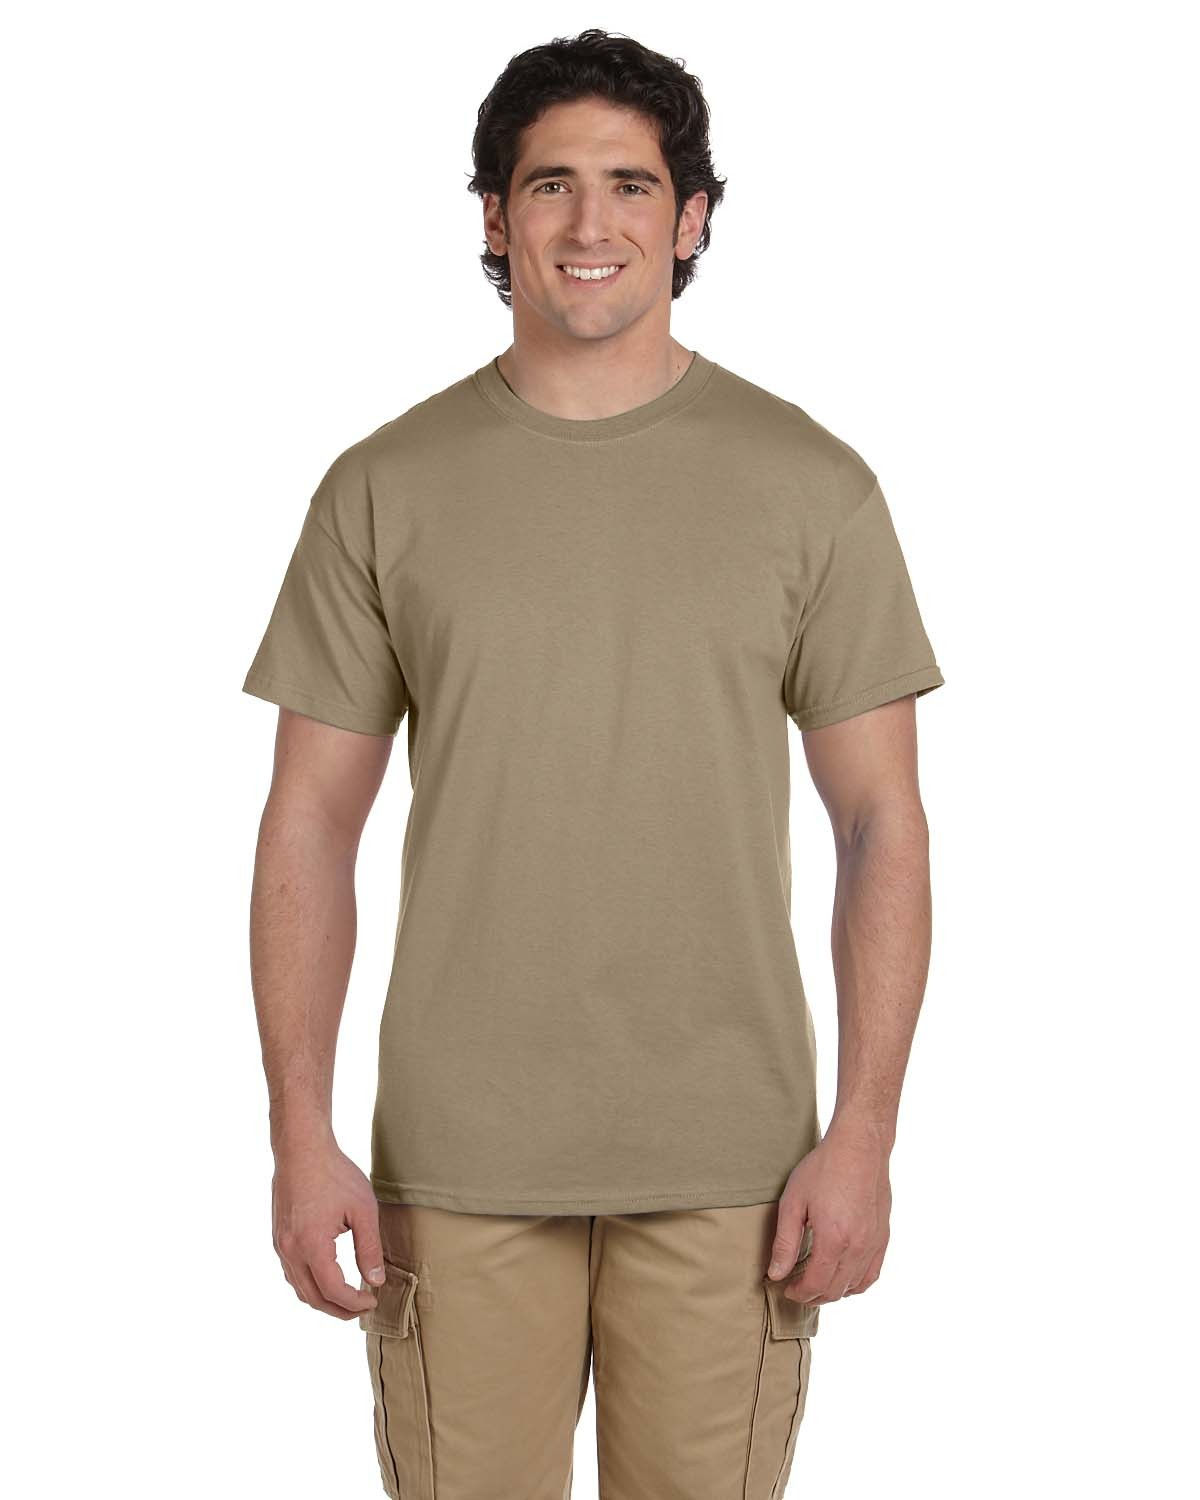 3931 Fruit of the Loom KHAKI